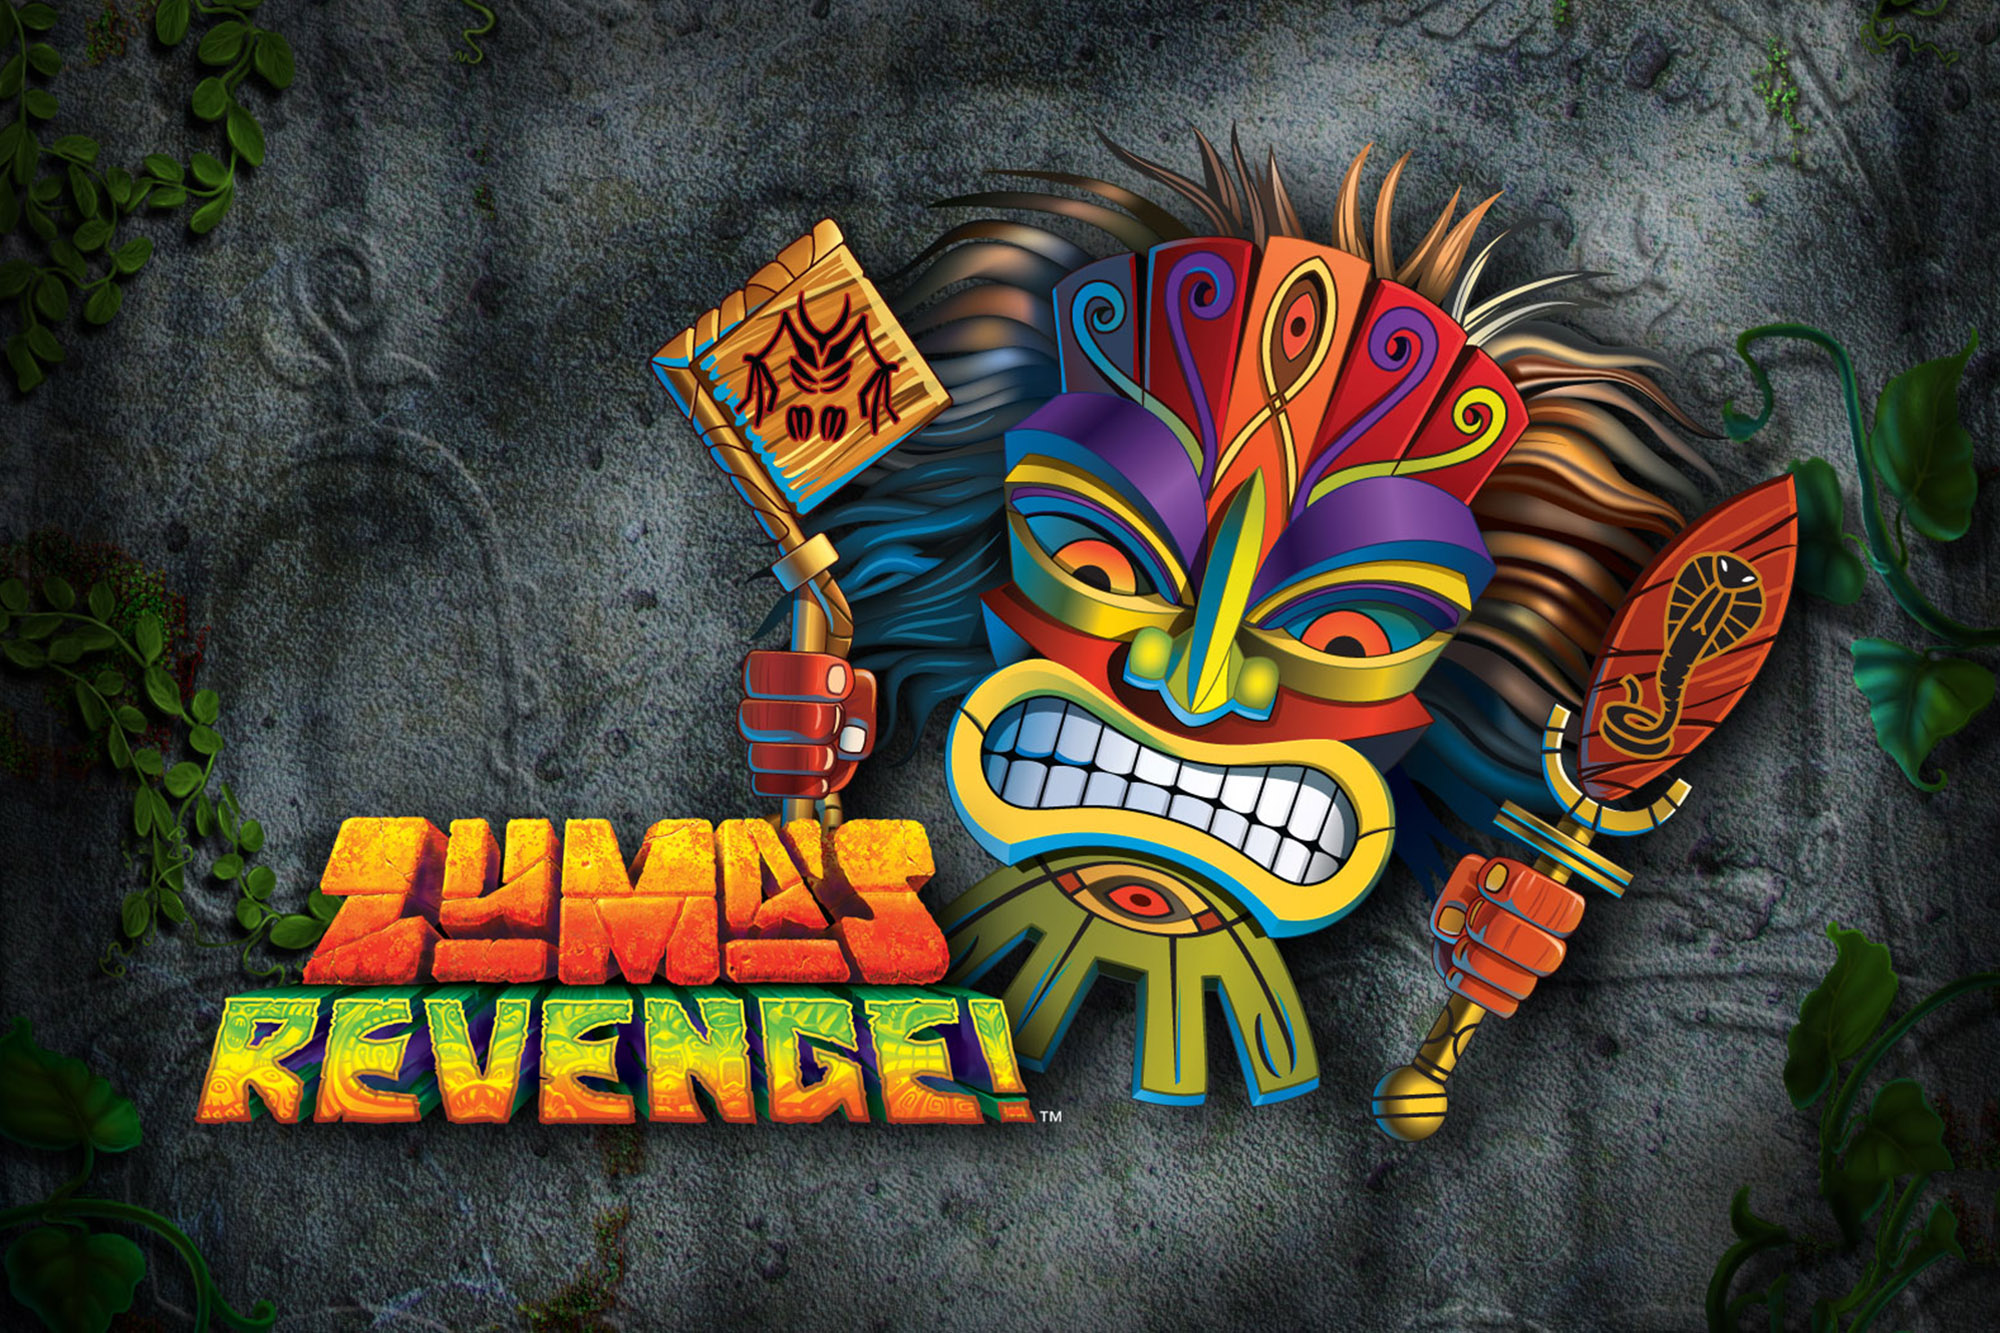 Zumas Revenge Wallpaper 636125 Rivers Of Grue